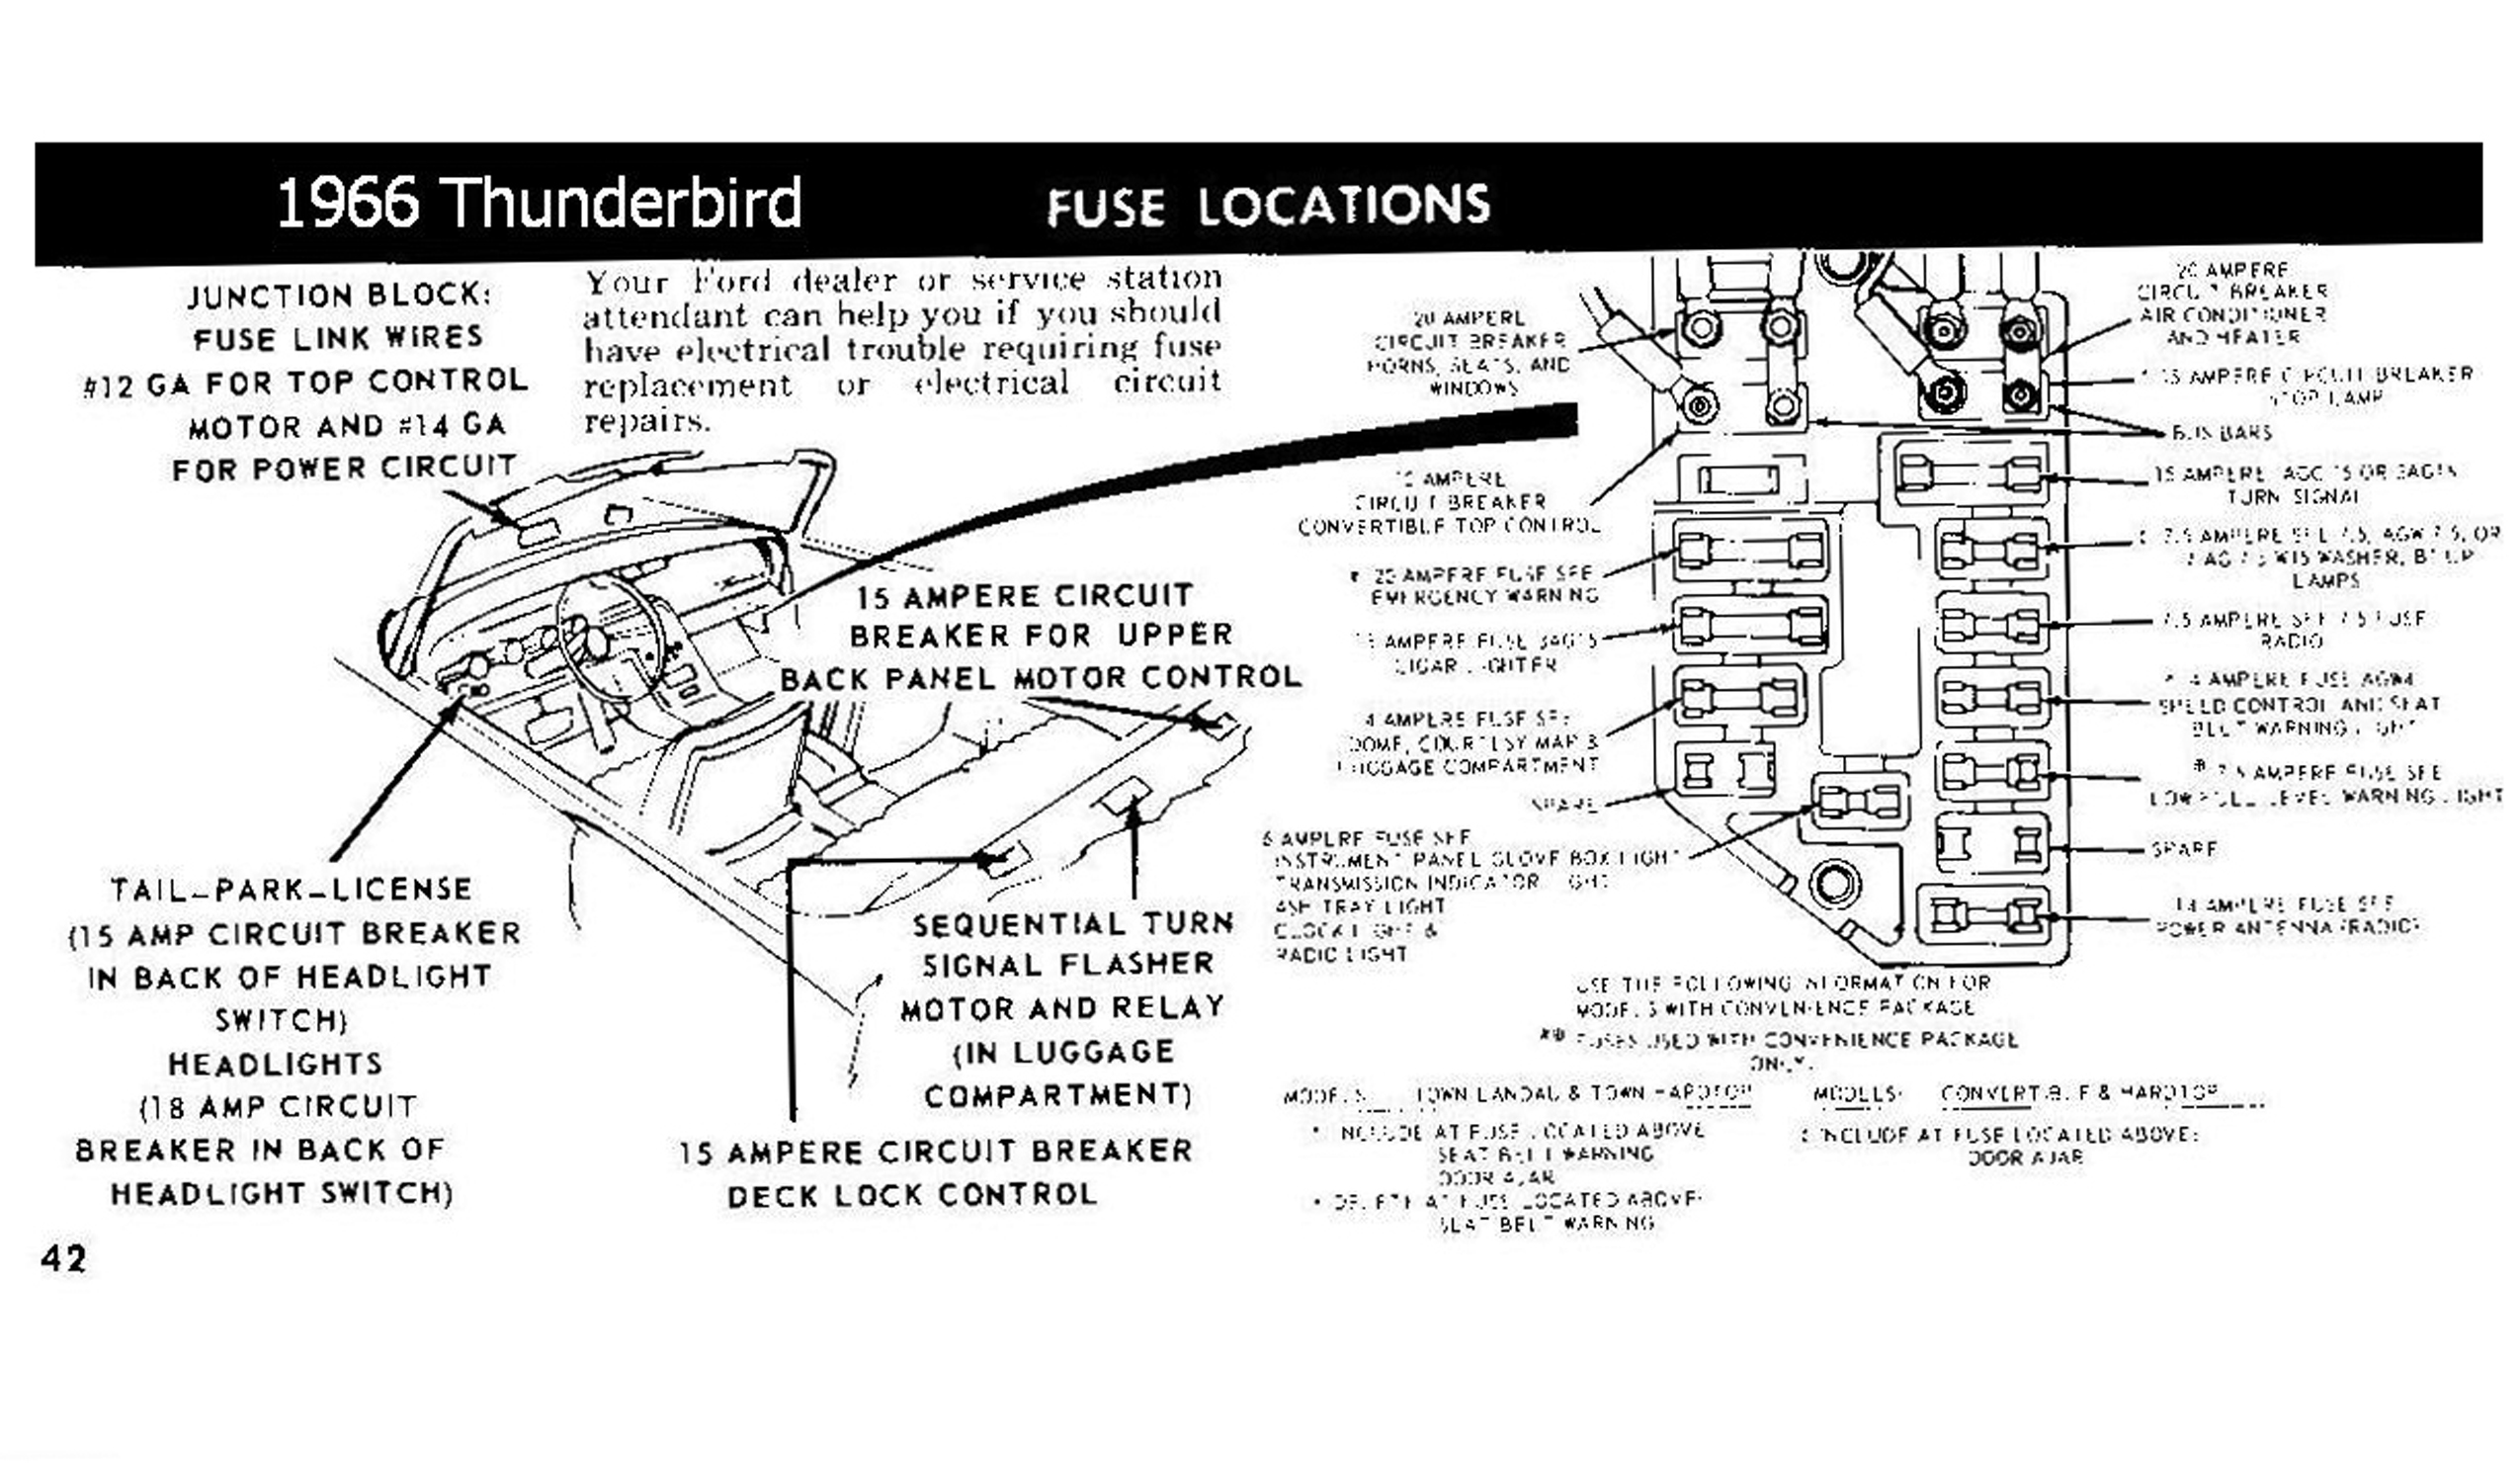 [DIAGRAM] 1996 Ford Thunderbird Fuse Box Diagram FULL